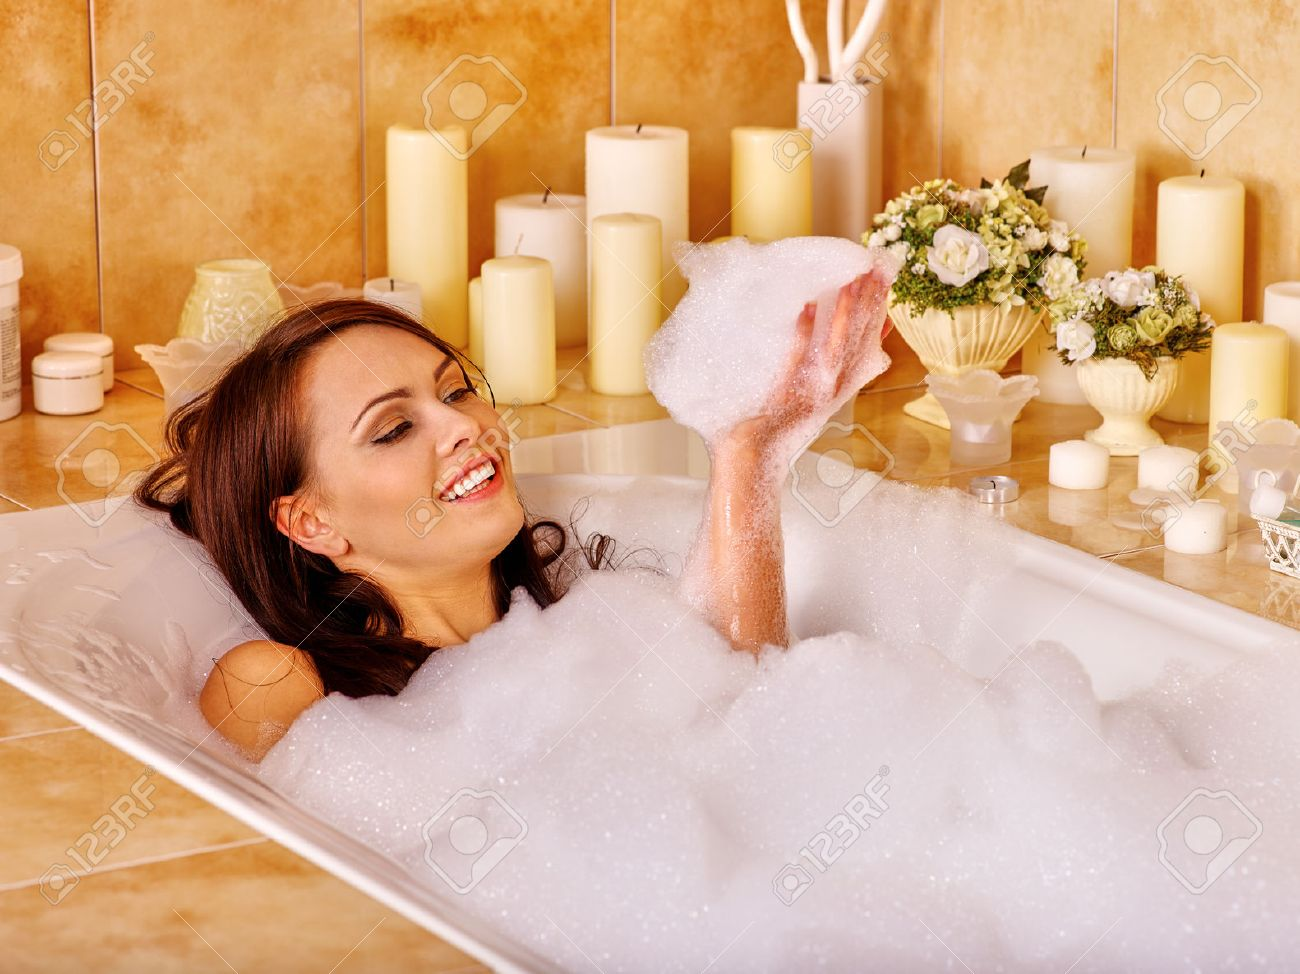 Woman relaxing at water in bubble bath. - 38740906